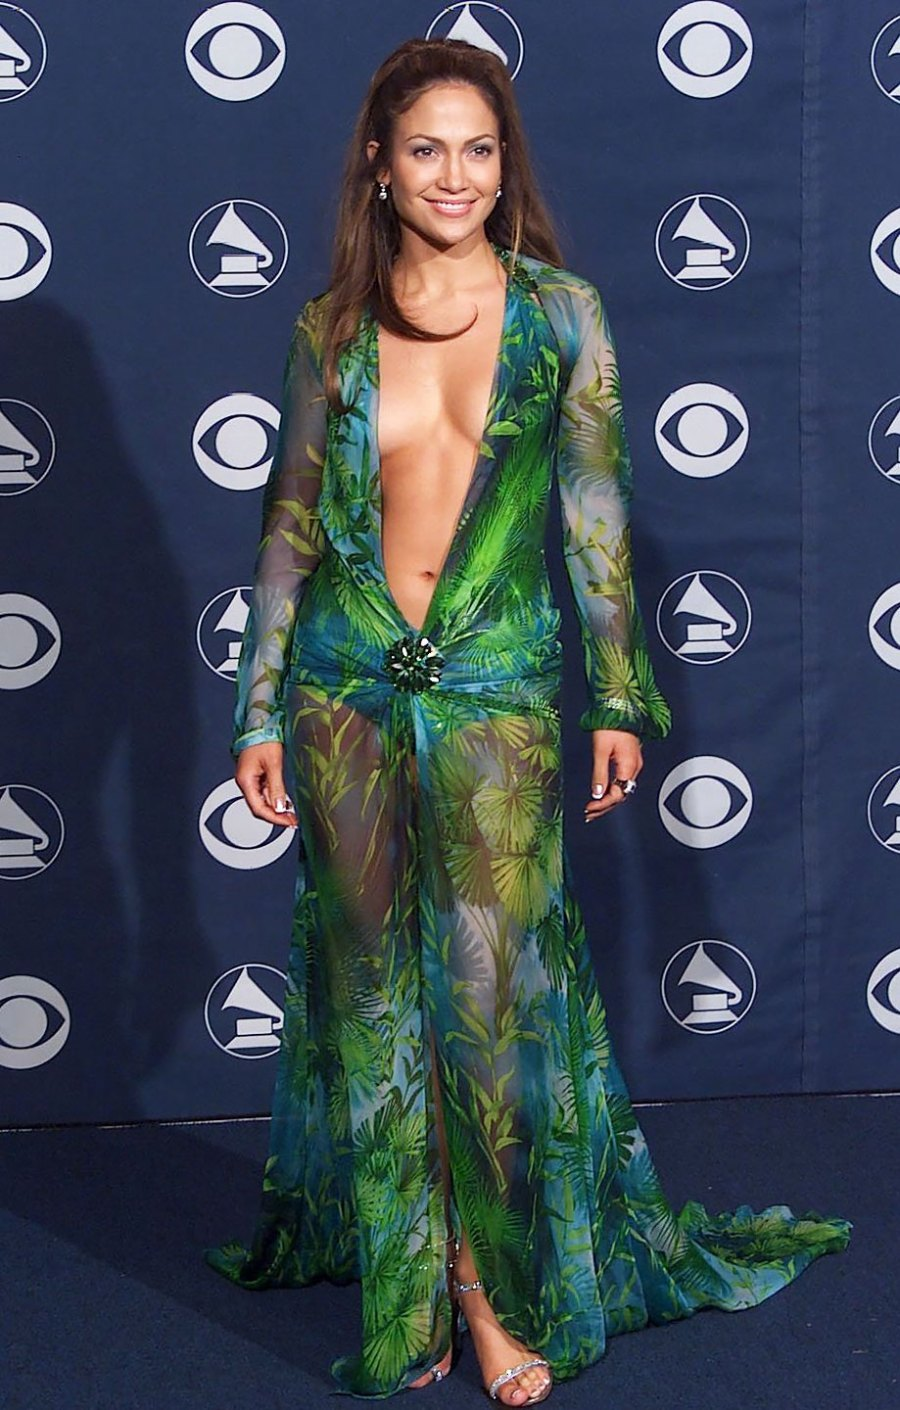 Grammys Red Carpet: The Most Revealing Dresses of All Time